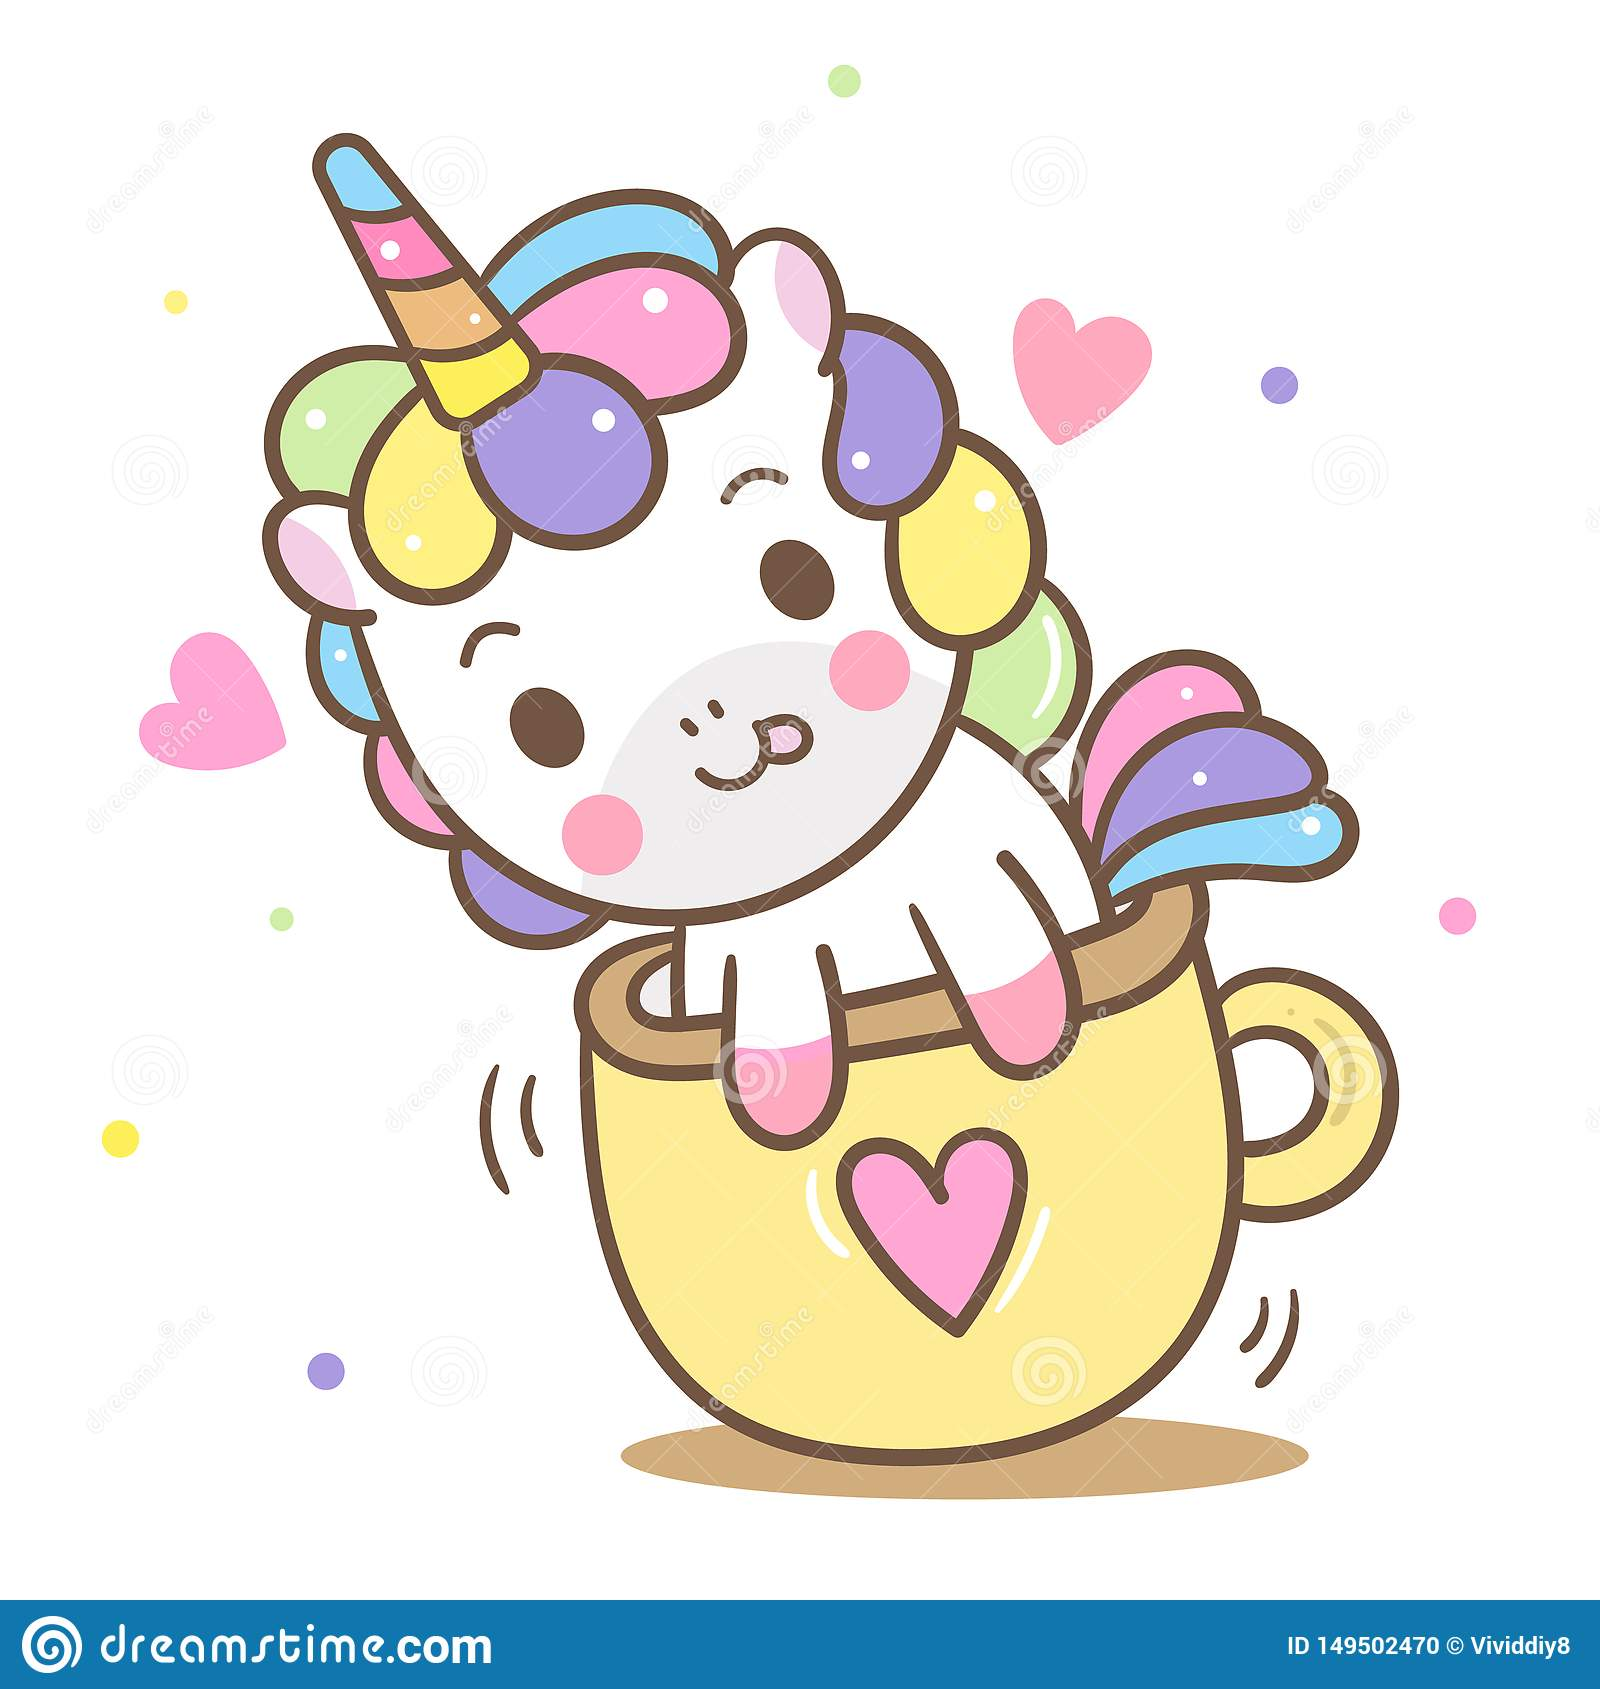 Illustrator Of Cute Unicorn Vector In Mini Cup Kawaii Pony